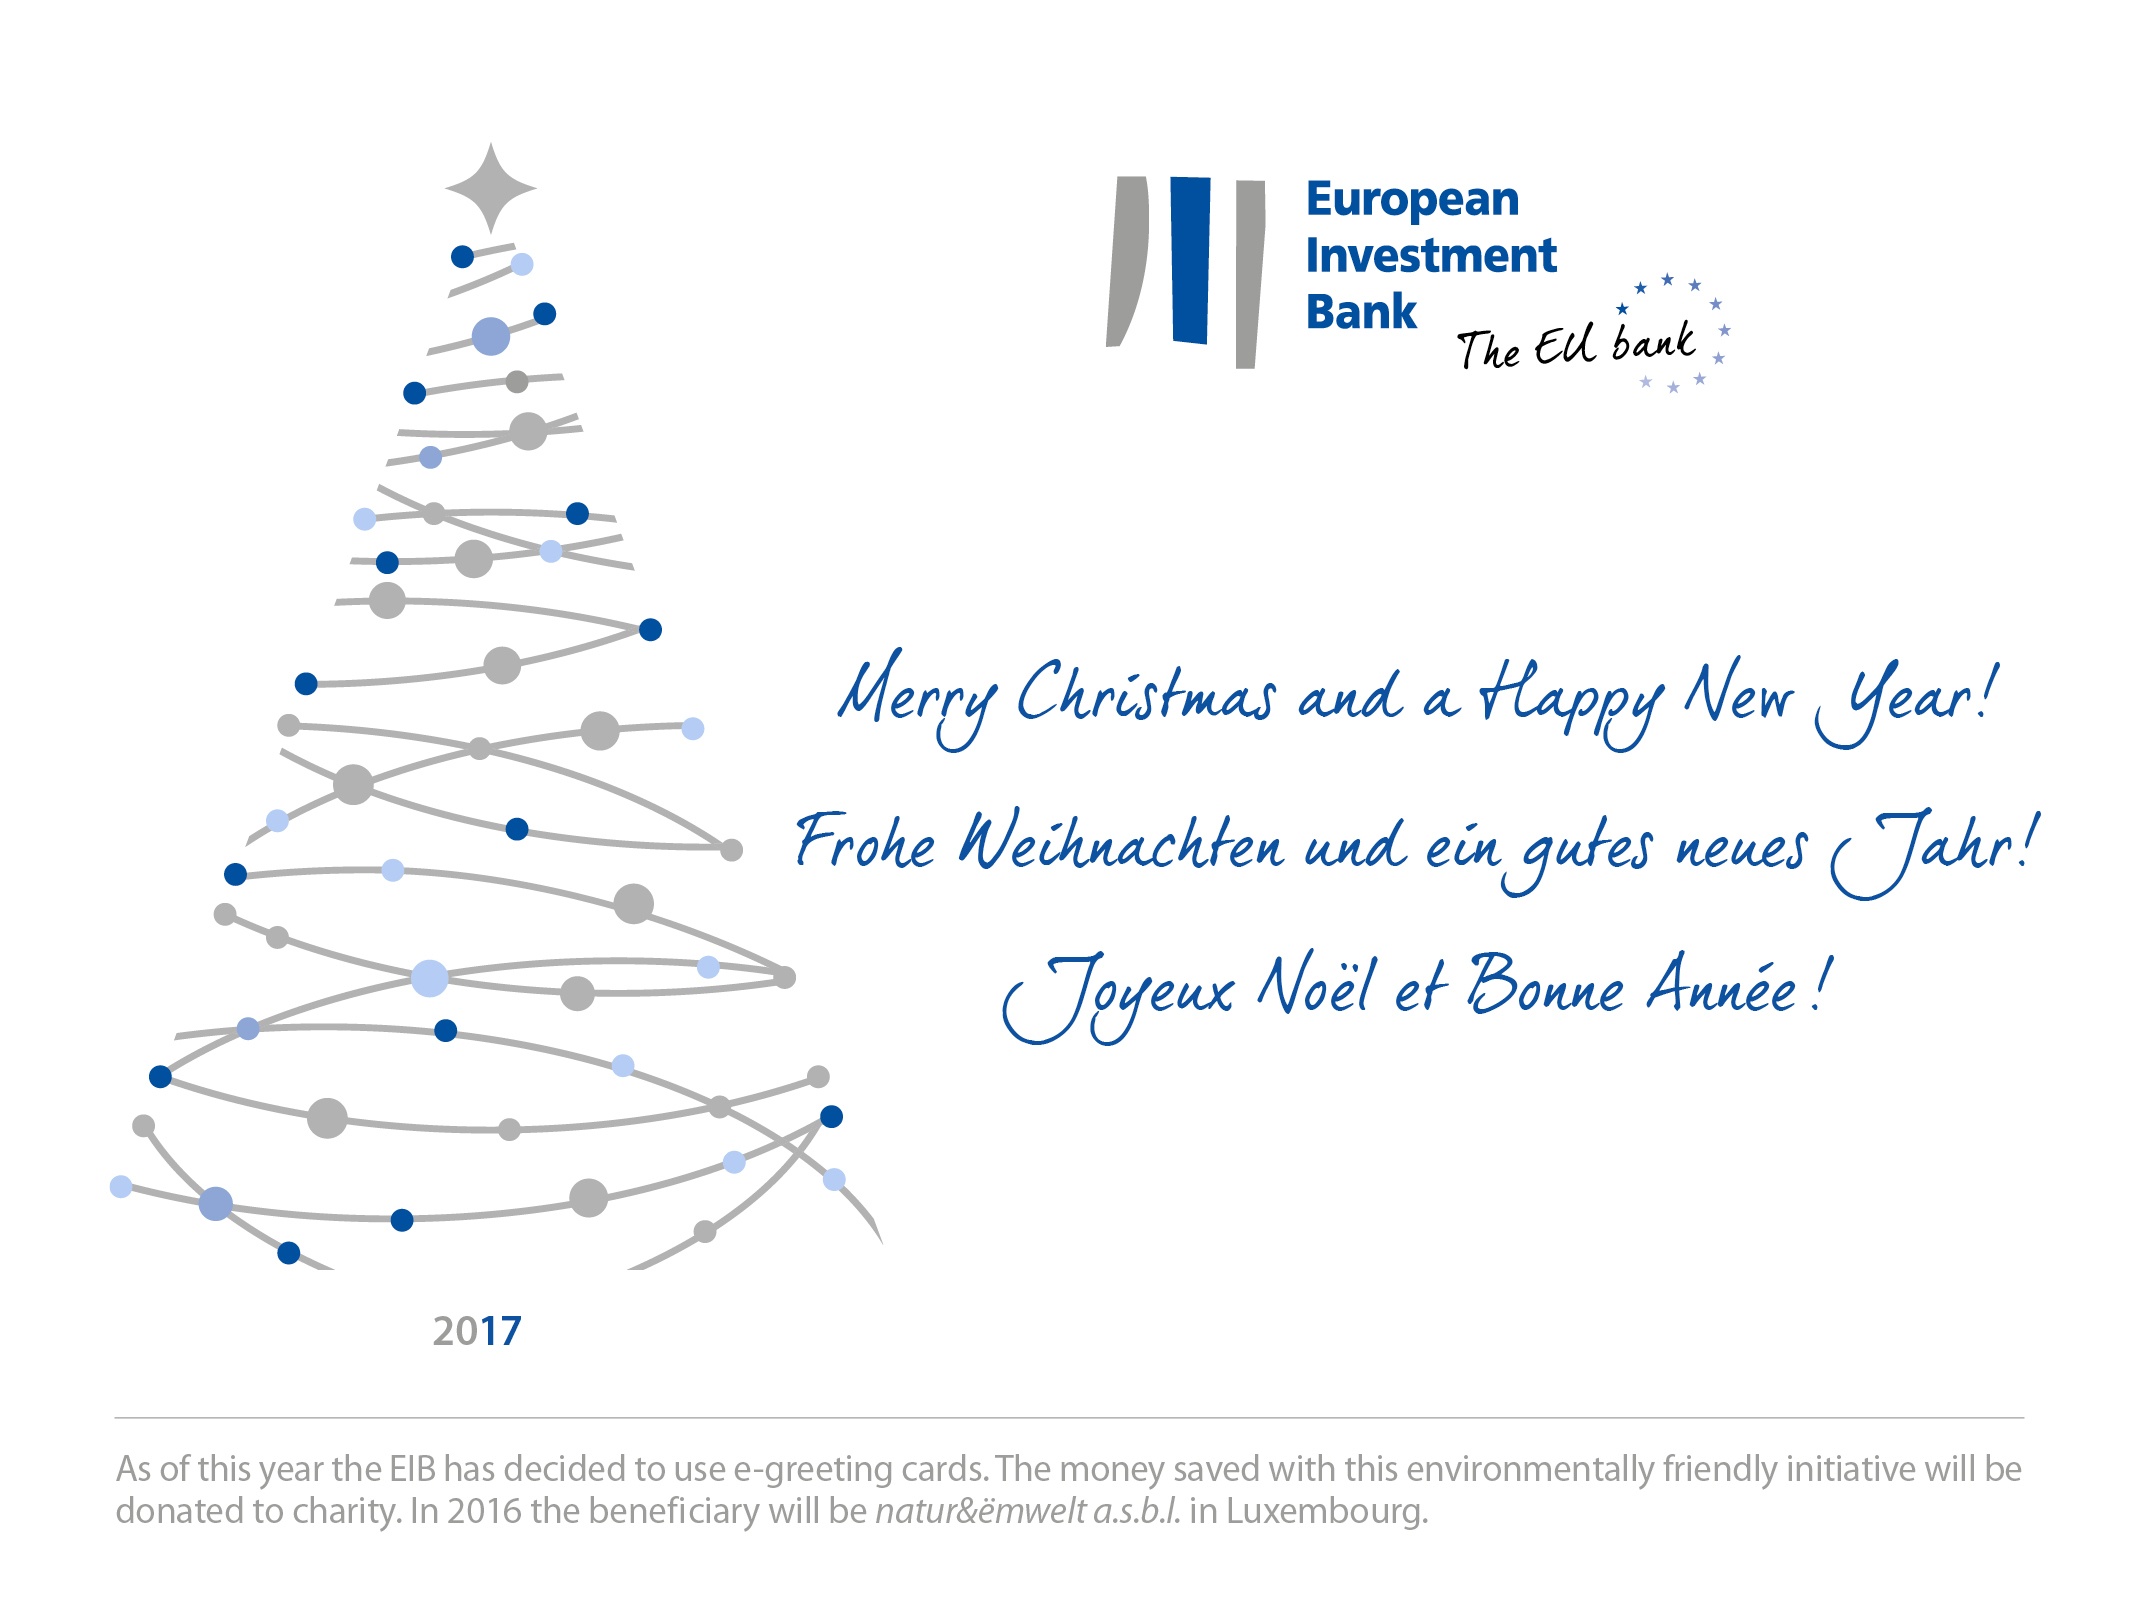 Seasons greetings from the eib institute eib institute seasons greetings from the eib institute kristyandbryce Image collections